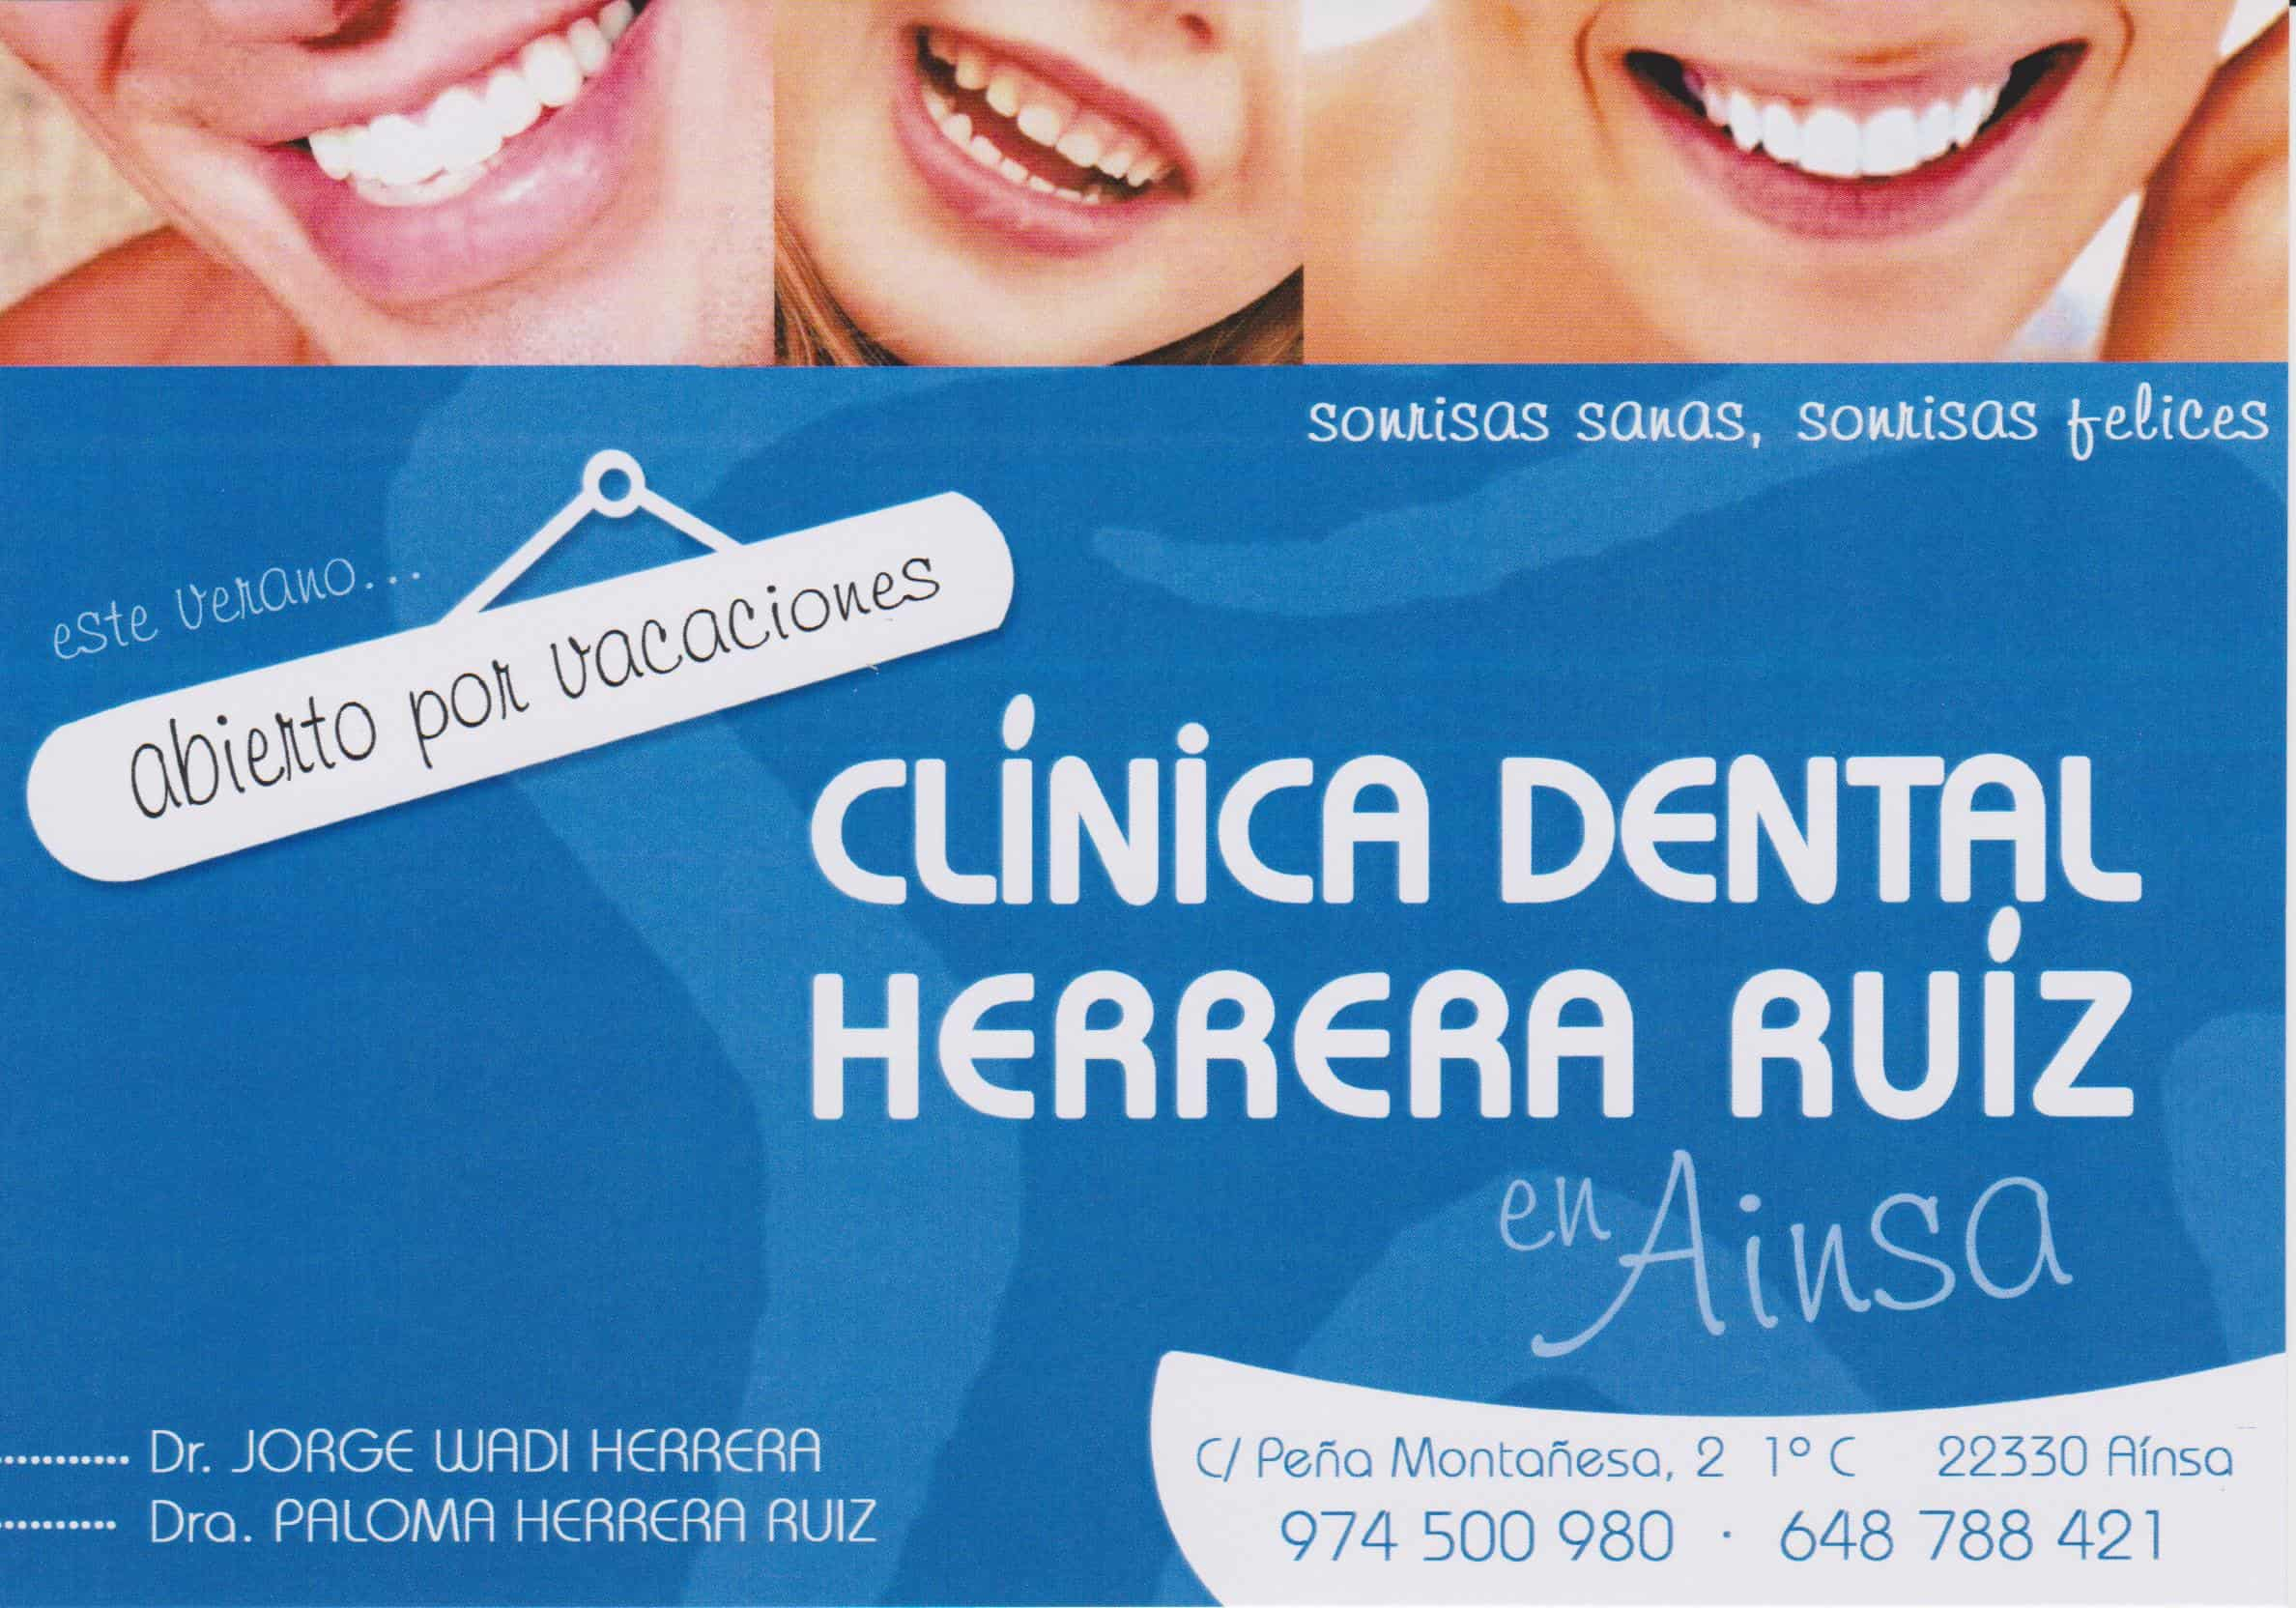 Clinica Dental Herrera Ruiz